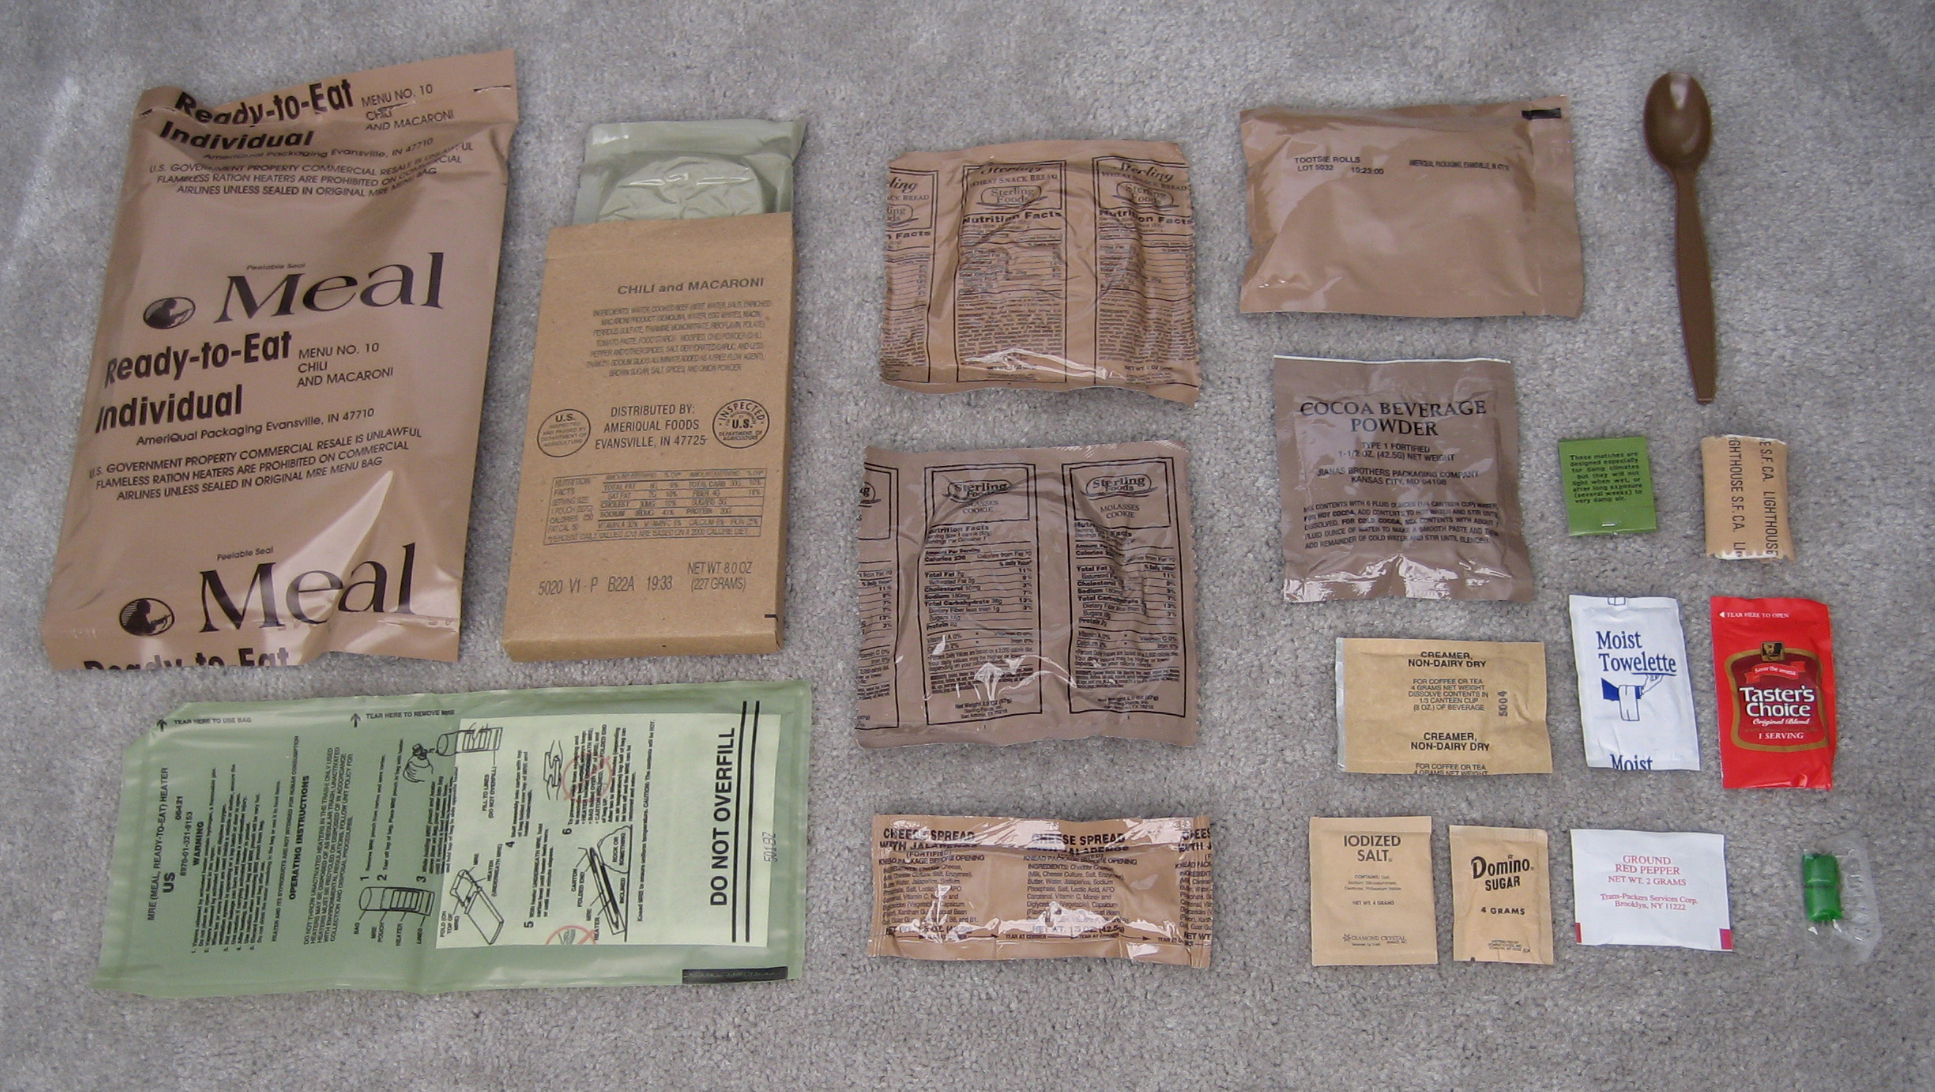 1945 Australian 24 Hour Operation Ration 02 MRE Review ...